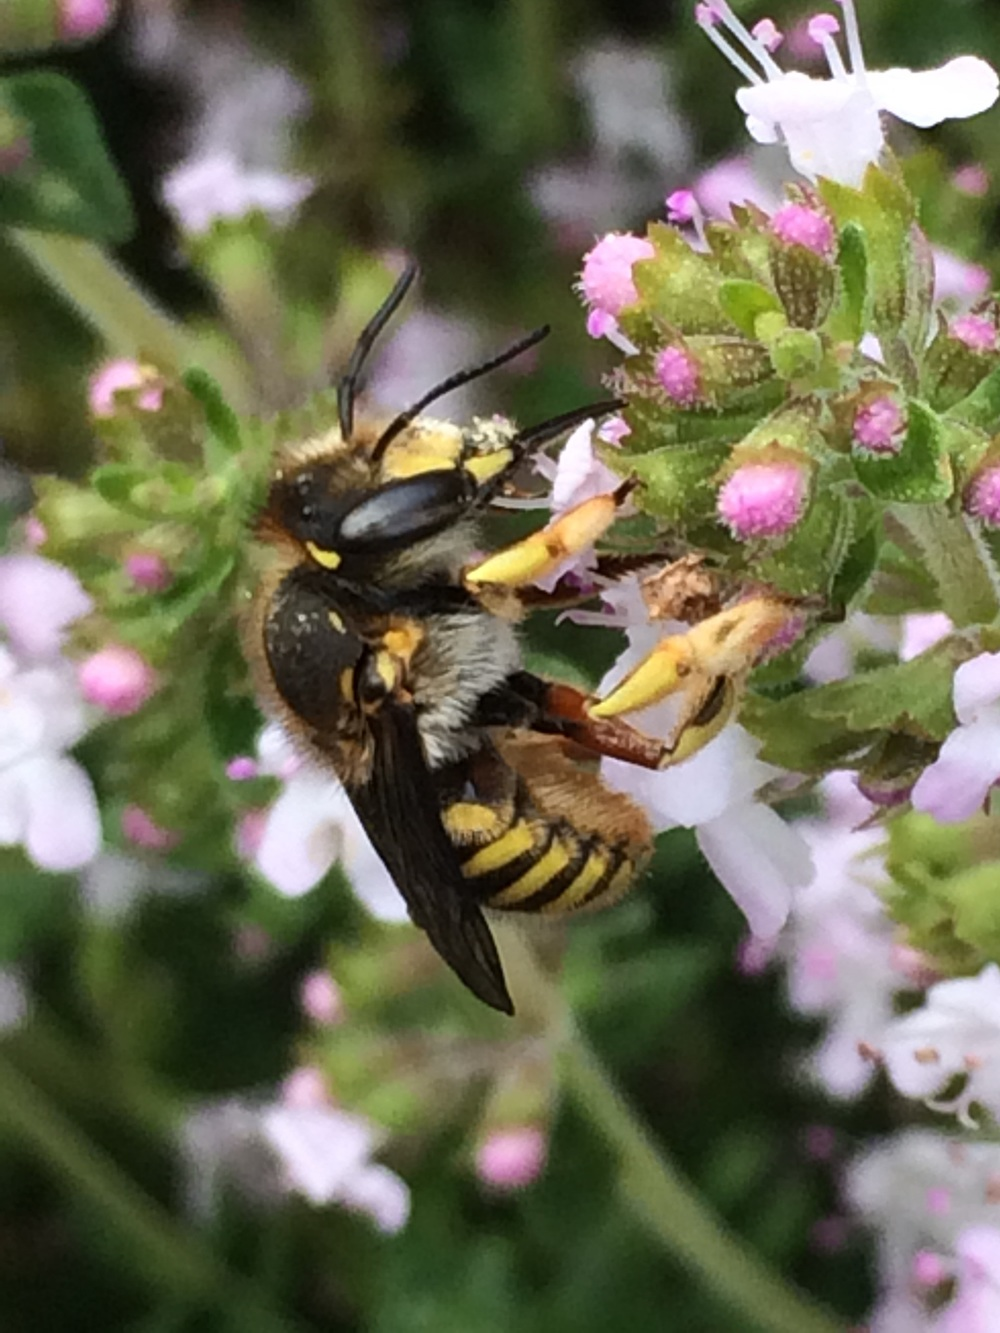 A female wool carder bee visiting thyme.